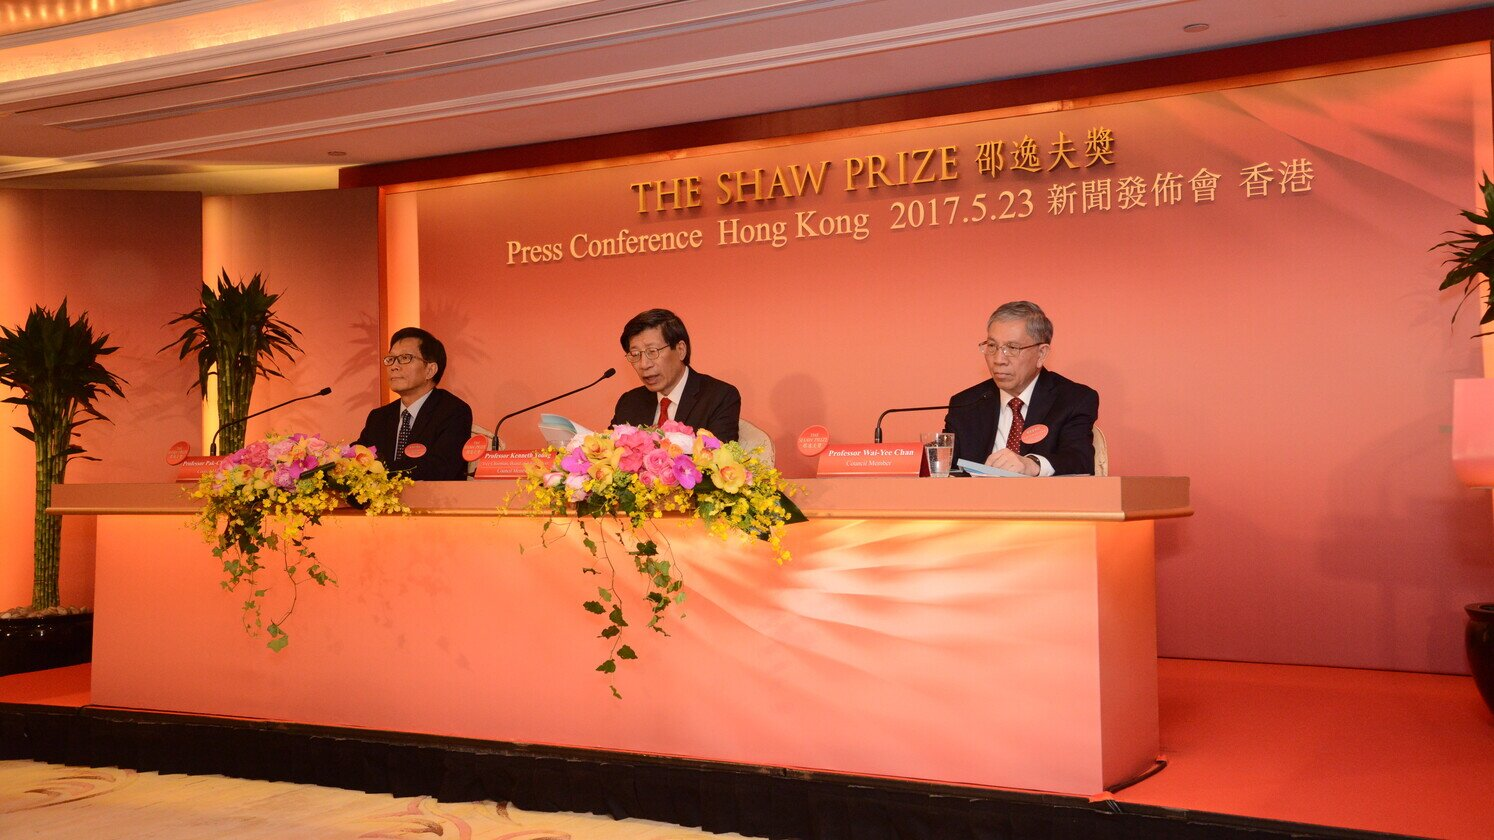 Announcement of The Shaw Laureates Press Conference 2017